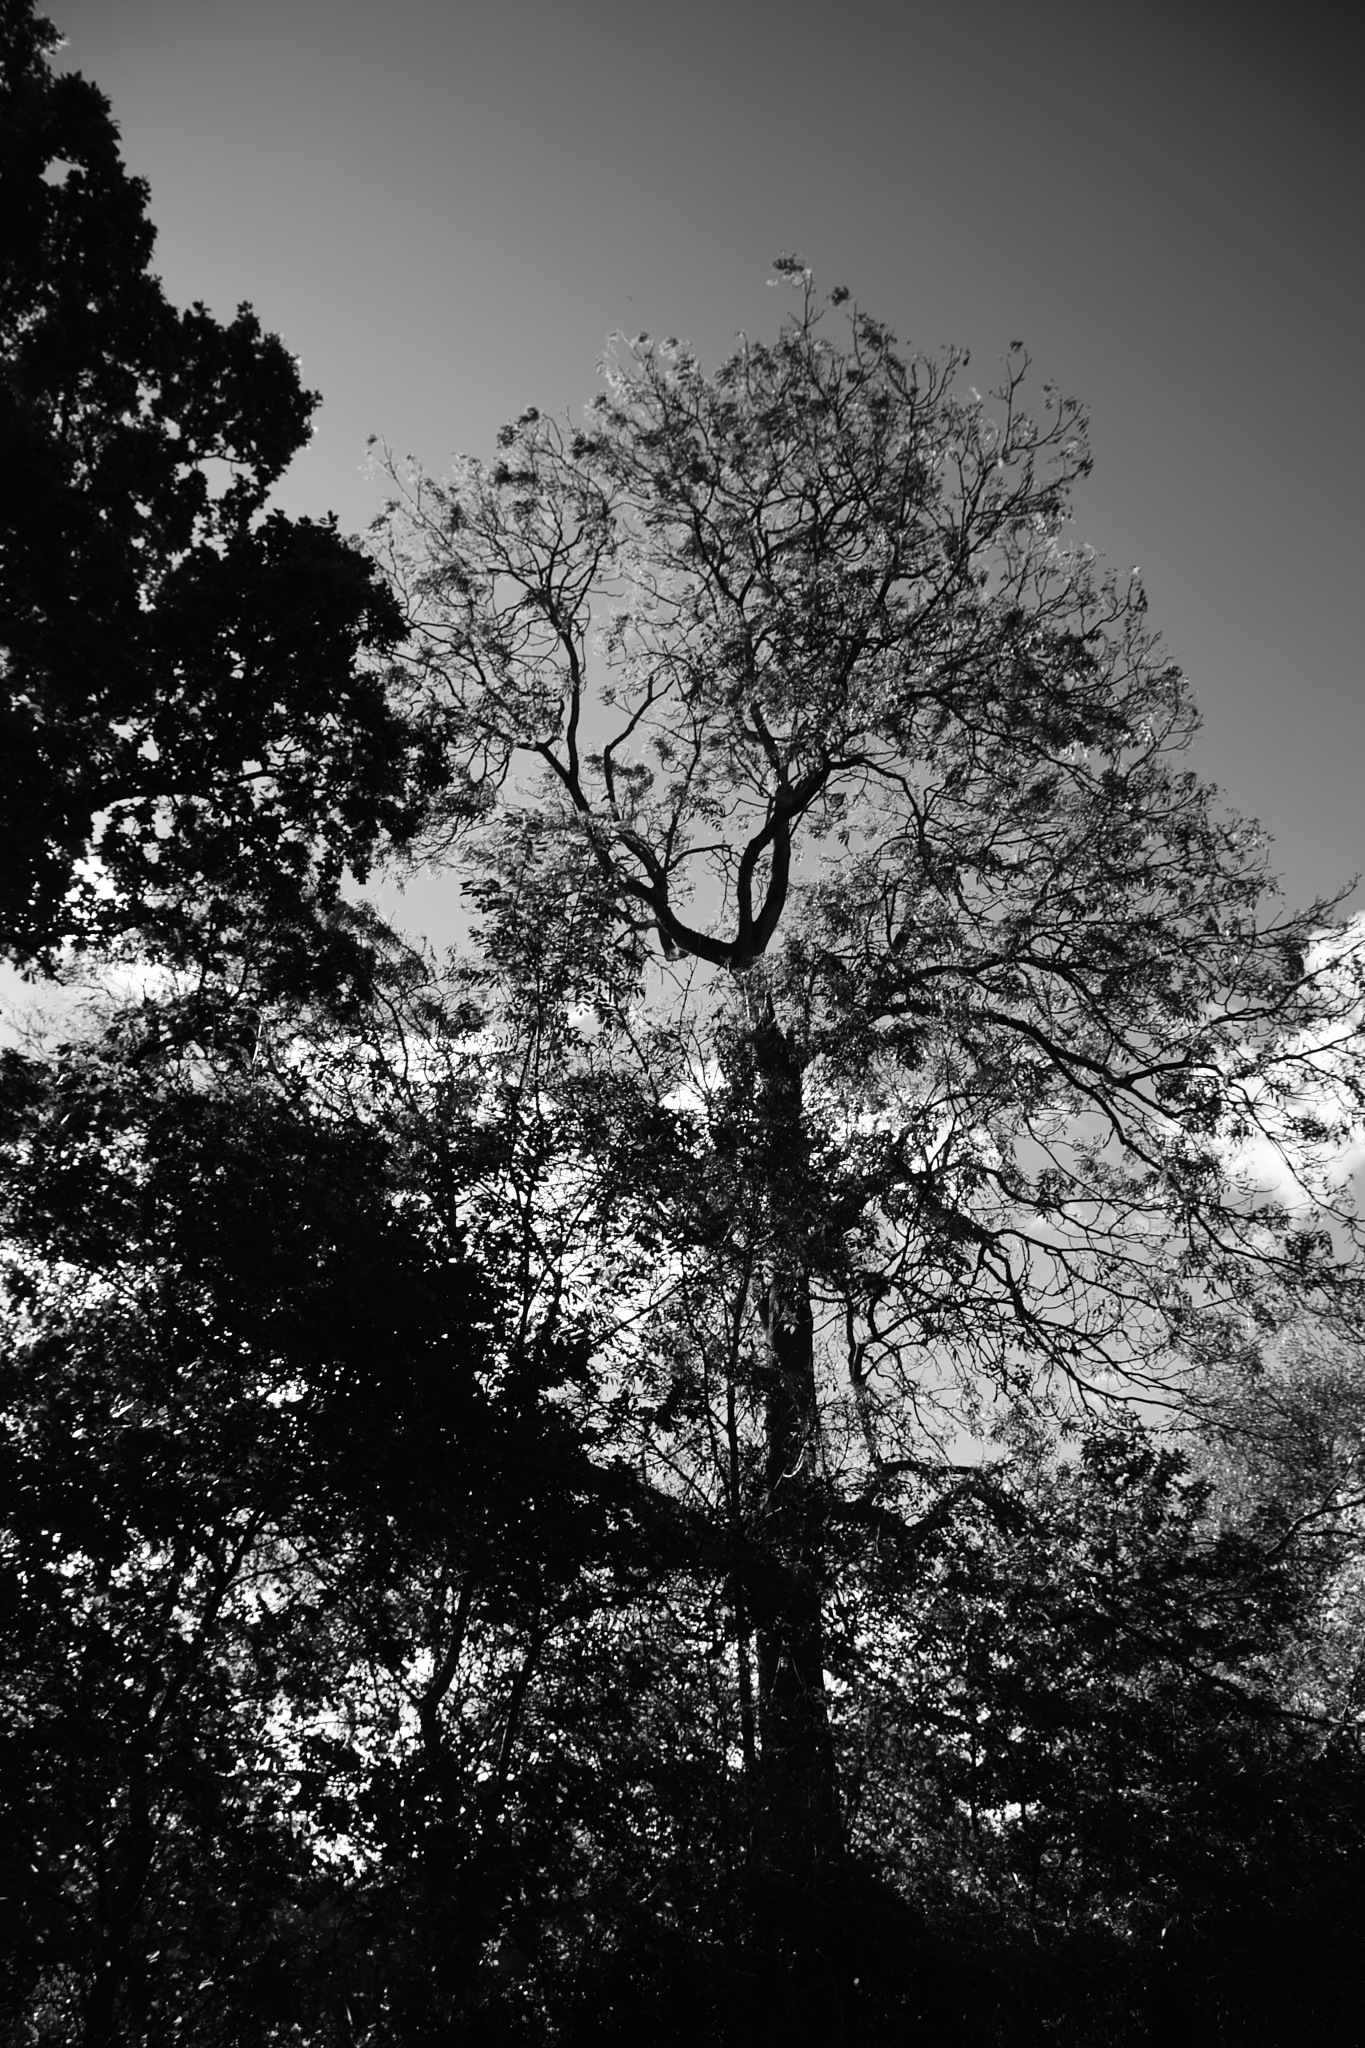 aFtErnOOn trEE linE by Ian Alastair Trenor Photography